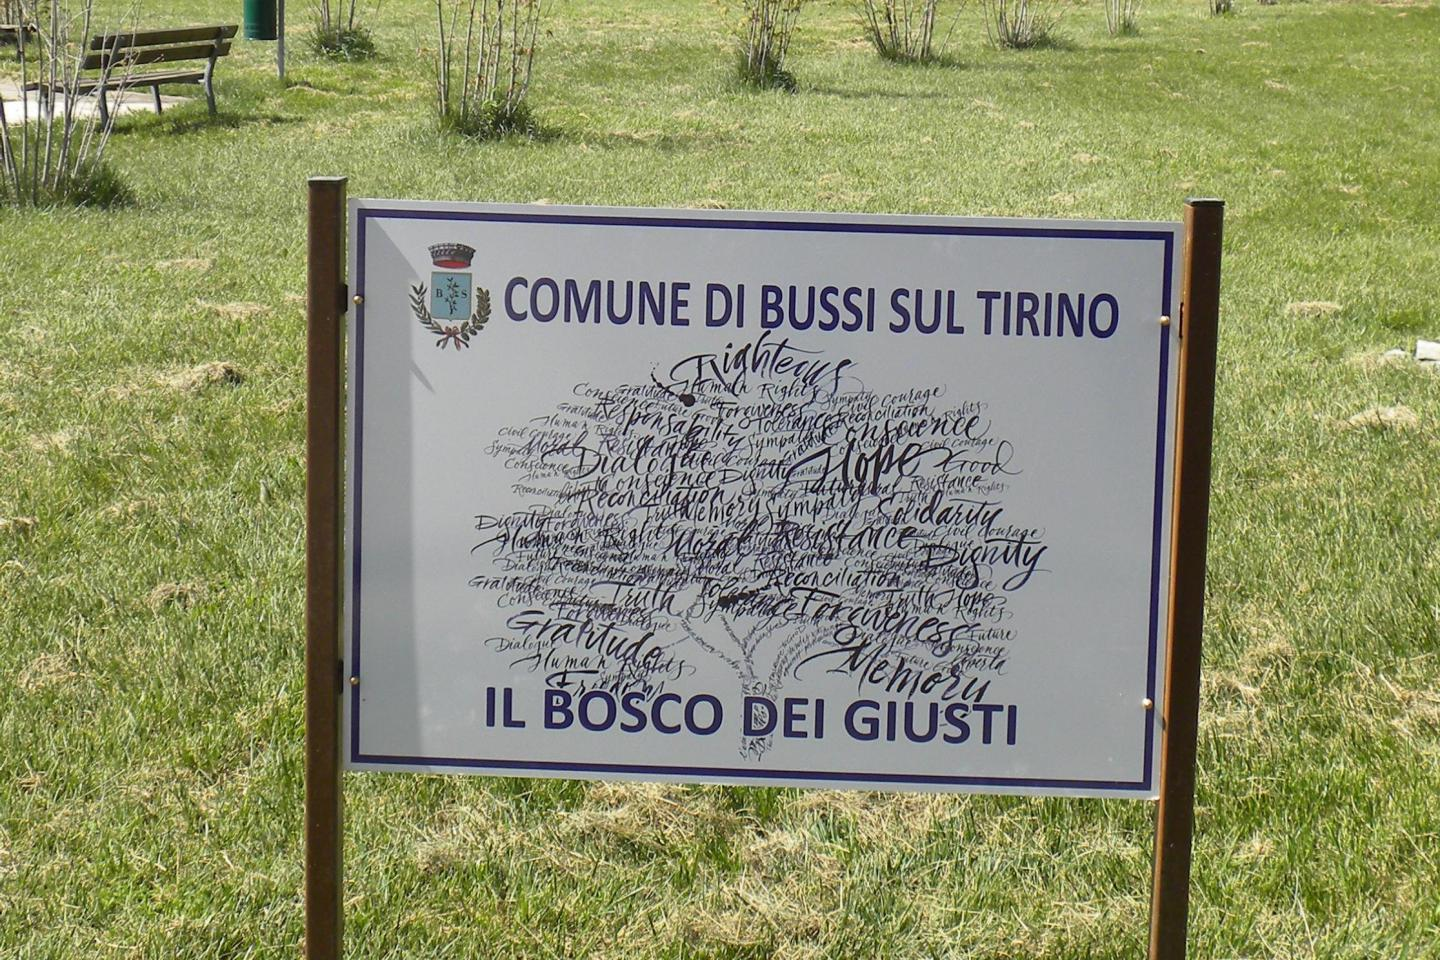 the Garden of Bussi sul Tirino in Pescara